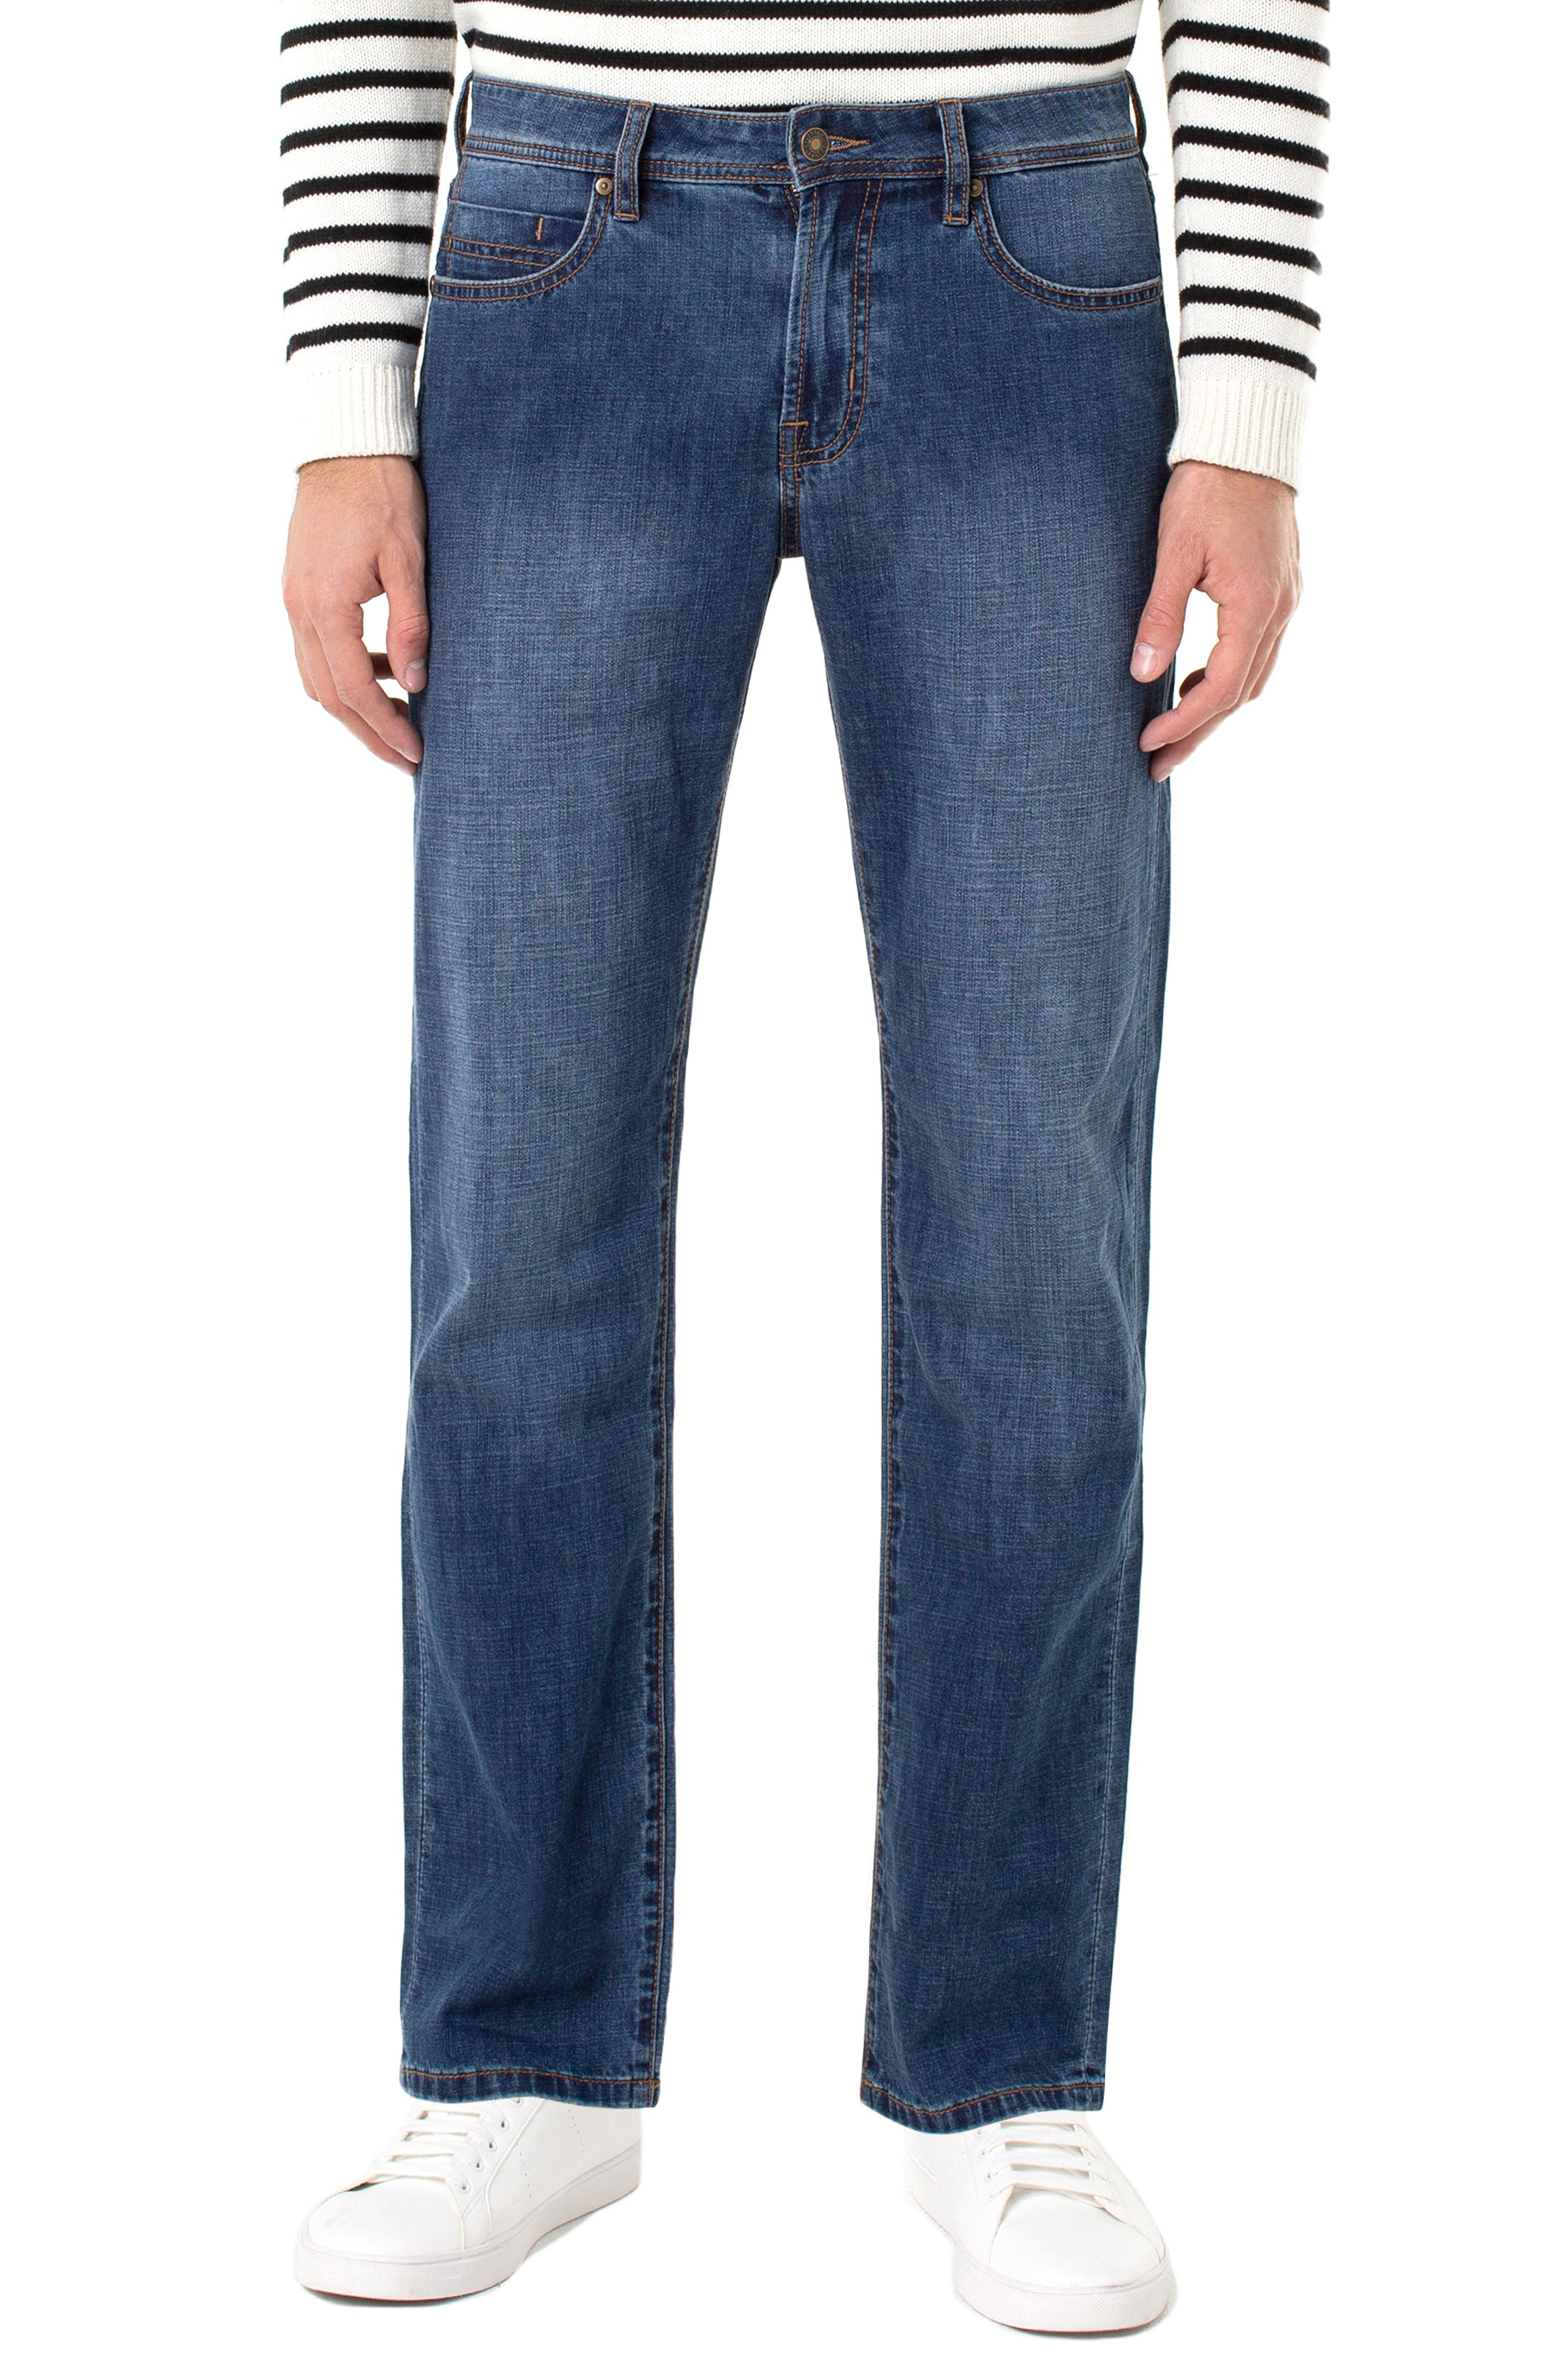 LIVERPOOL, Regent Relaxed Straight Leg Jeans, Main thumbnail 1, color, ANDERSON MID